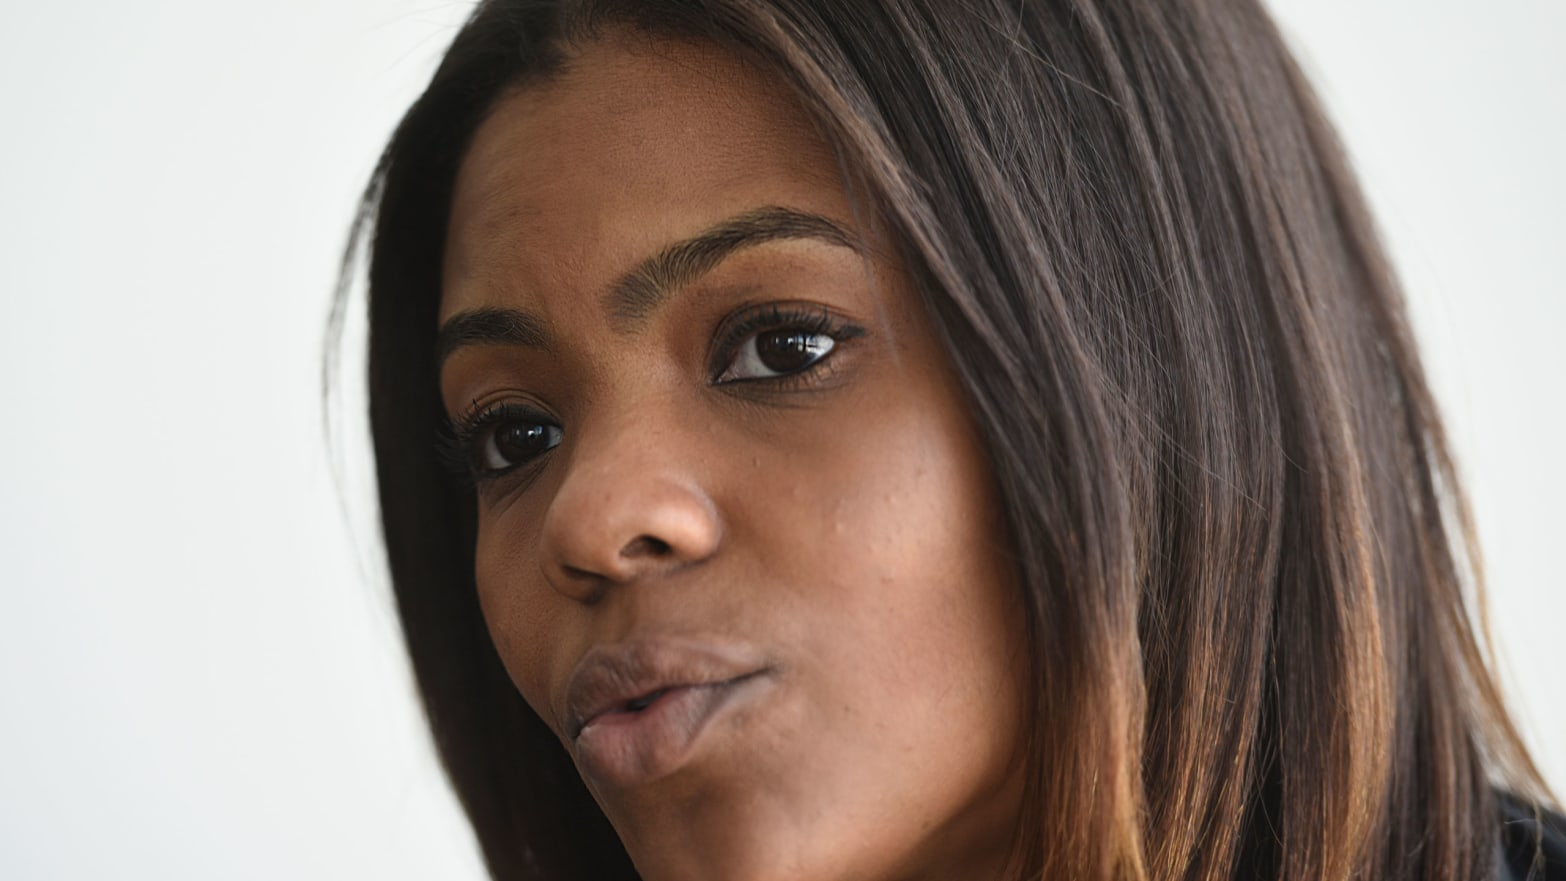 Candace Owens Gallery: Turning Point USA Students Call On Candace Owens To Step Down